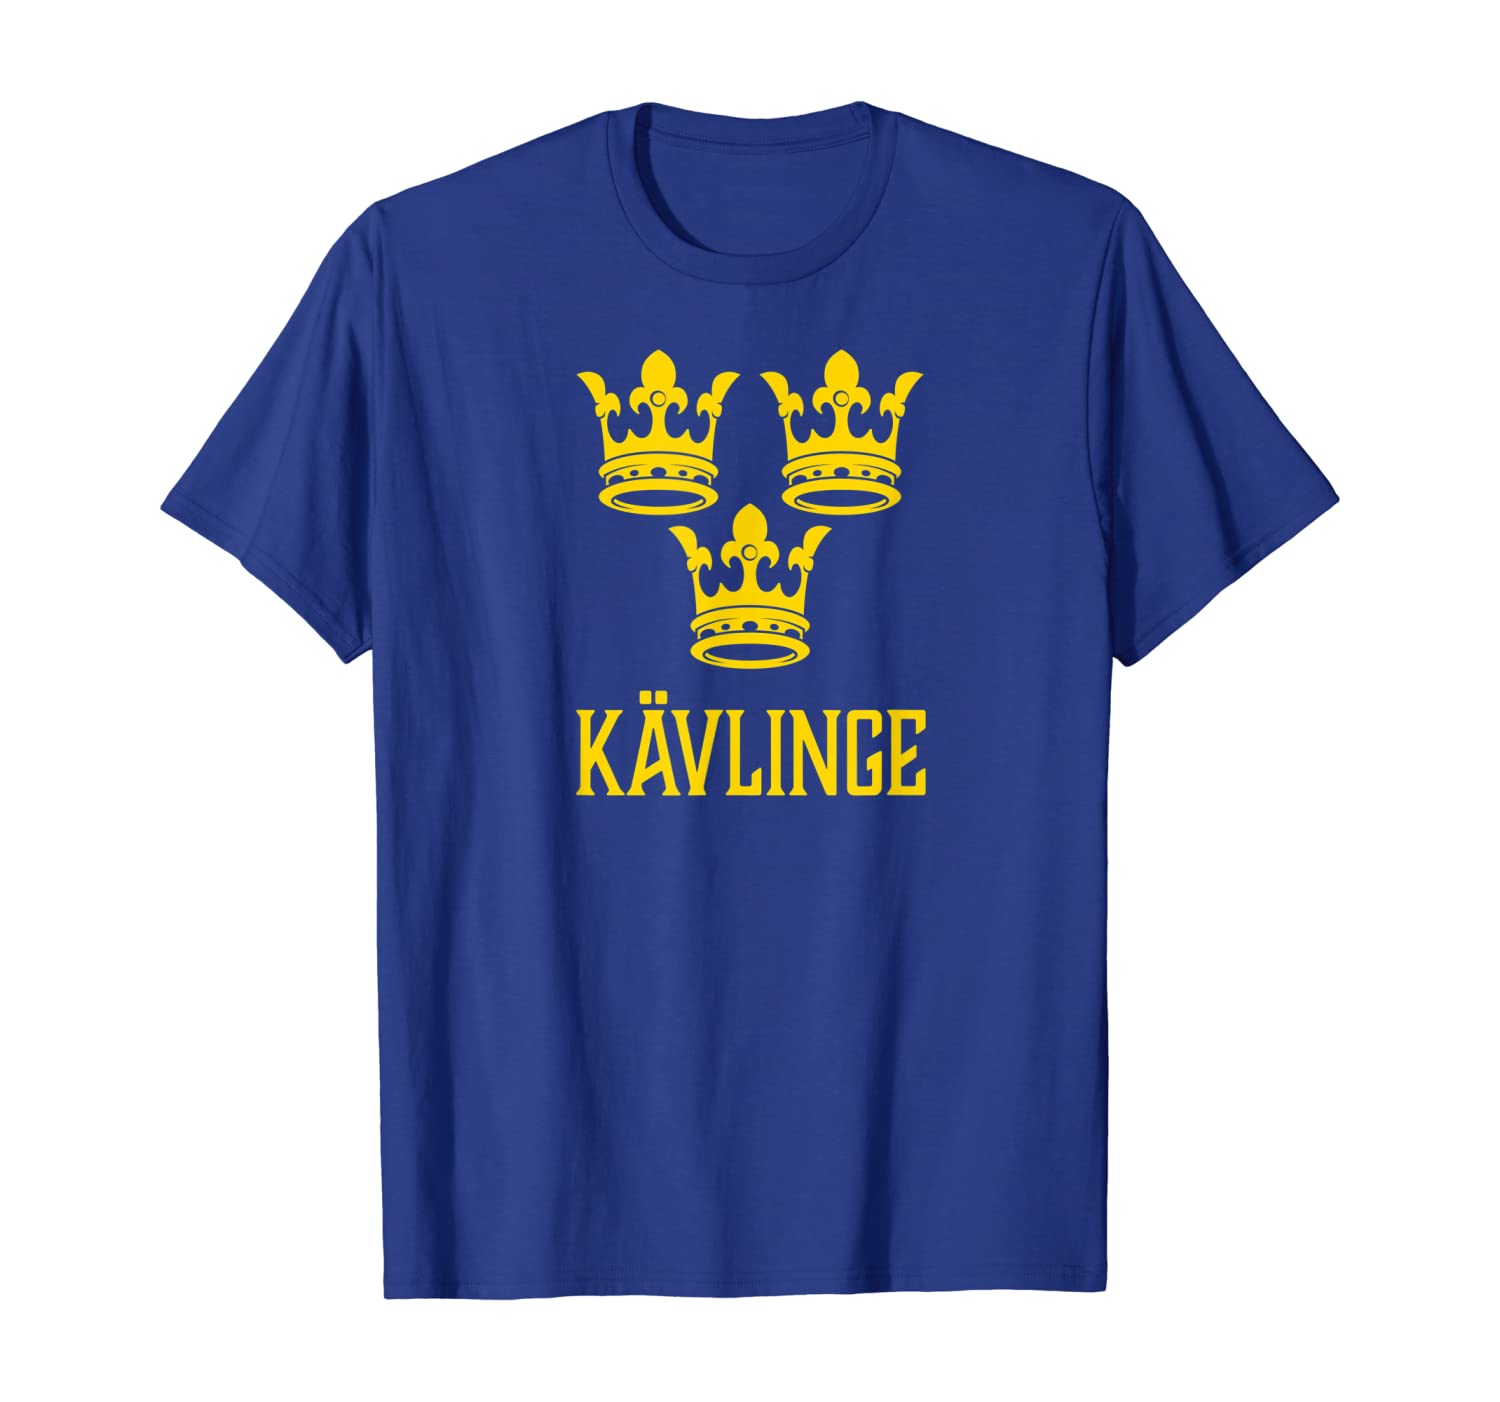 Amazon Com Kavlinge Sweden Swedish Sverige T Shirt Clothing